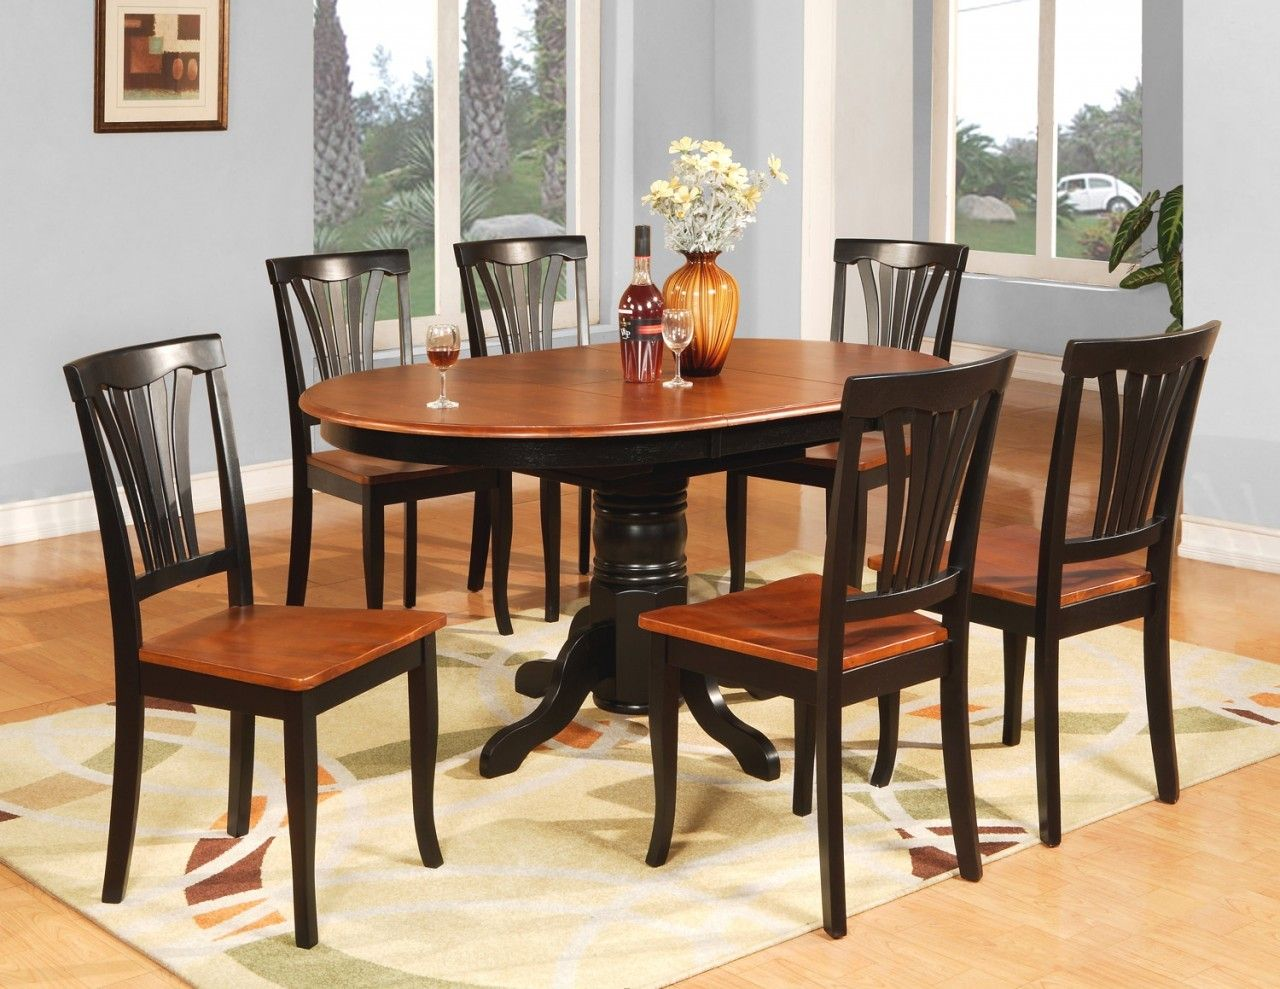 2 tone oval dining tables and chairs avon 5pc oval for Kitchen dining sets on sale